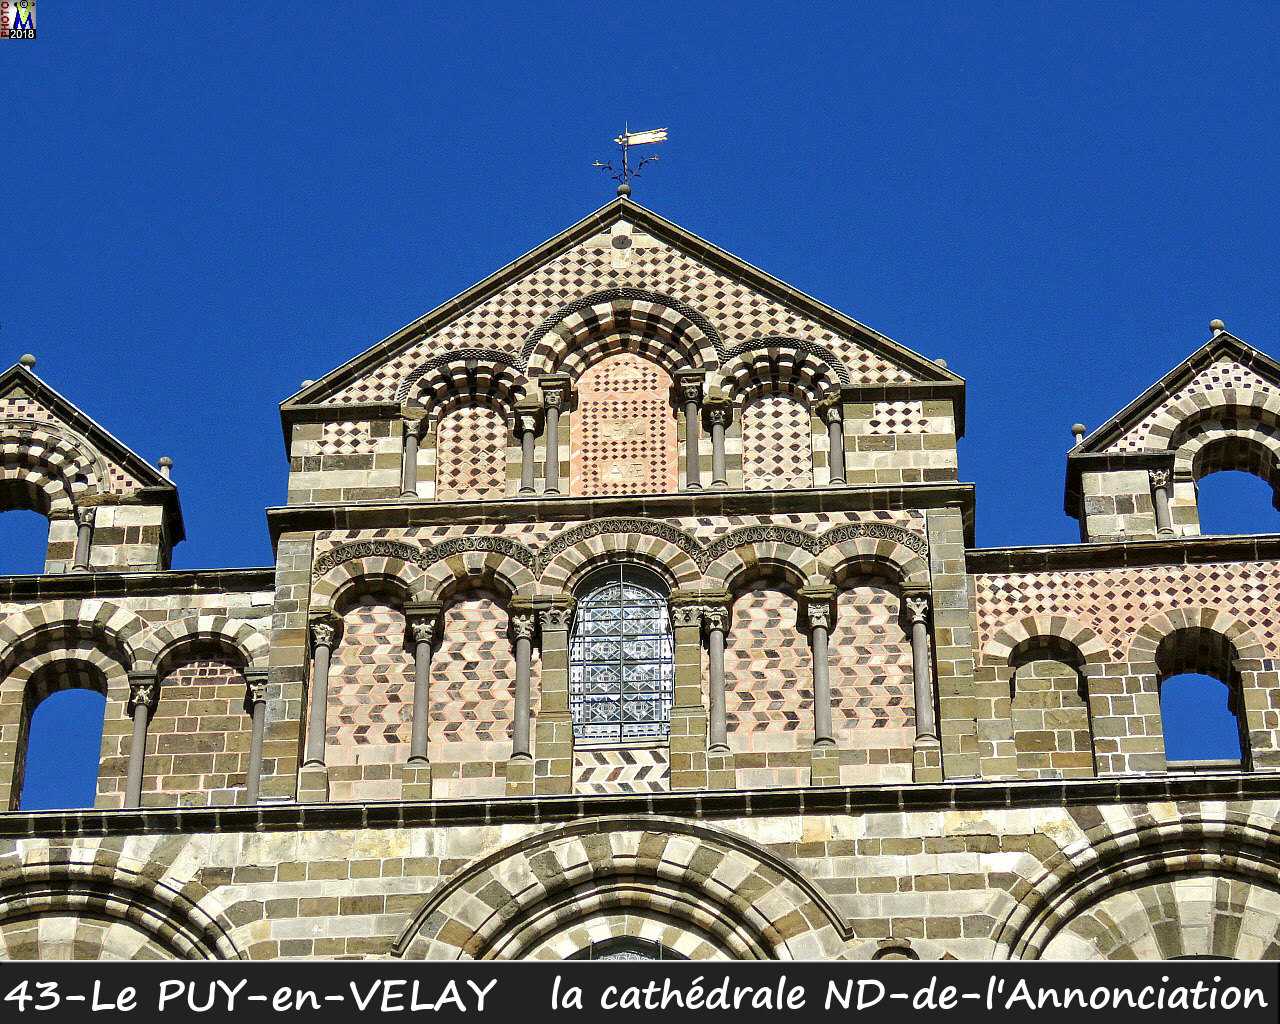 43PUY-EN-VELAY_cathedrale_116.jpg